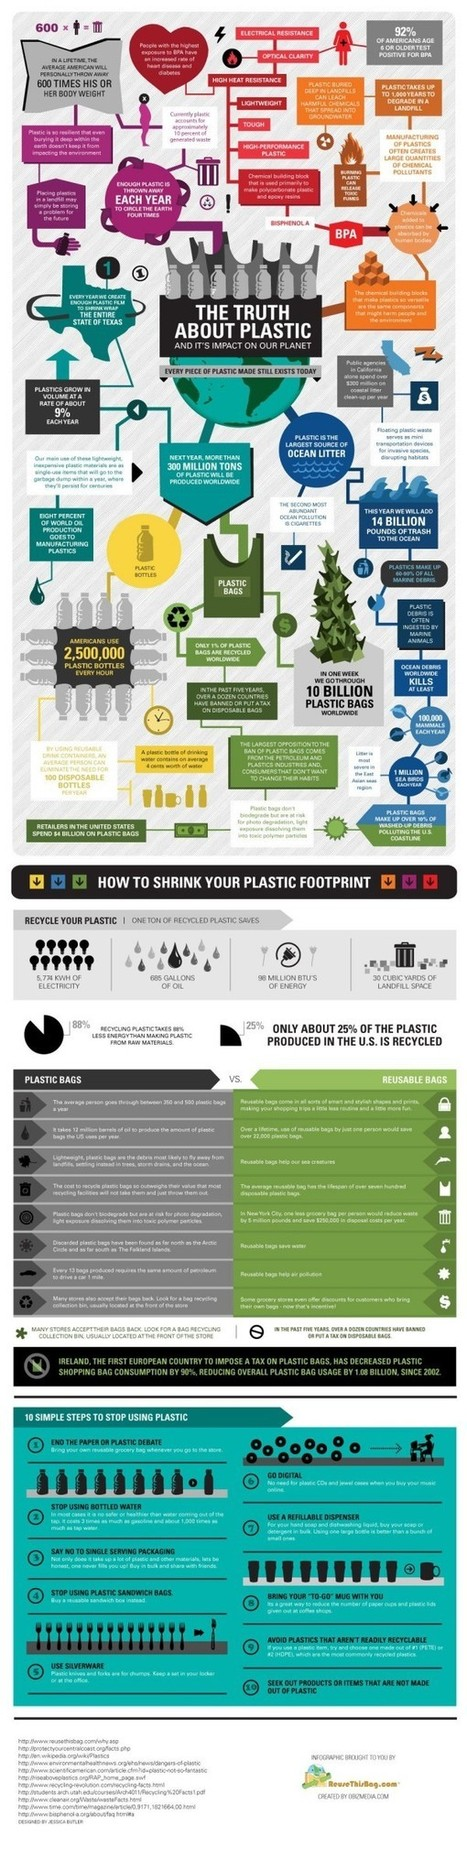 The truth about plastic and its impact on our planet [infographic] | Le flux d'Infogreen.lu | Scoop.it